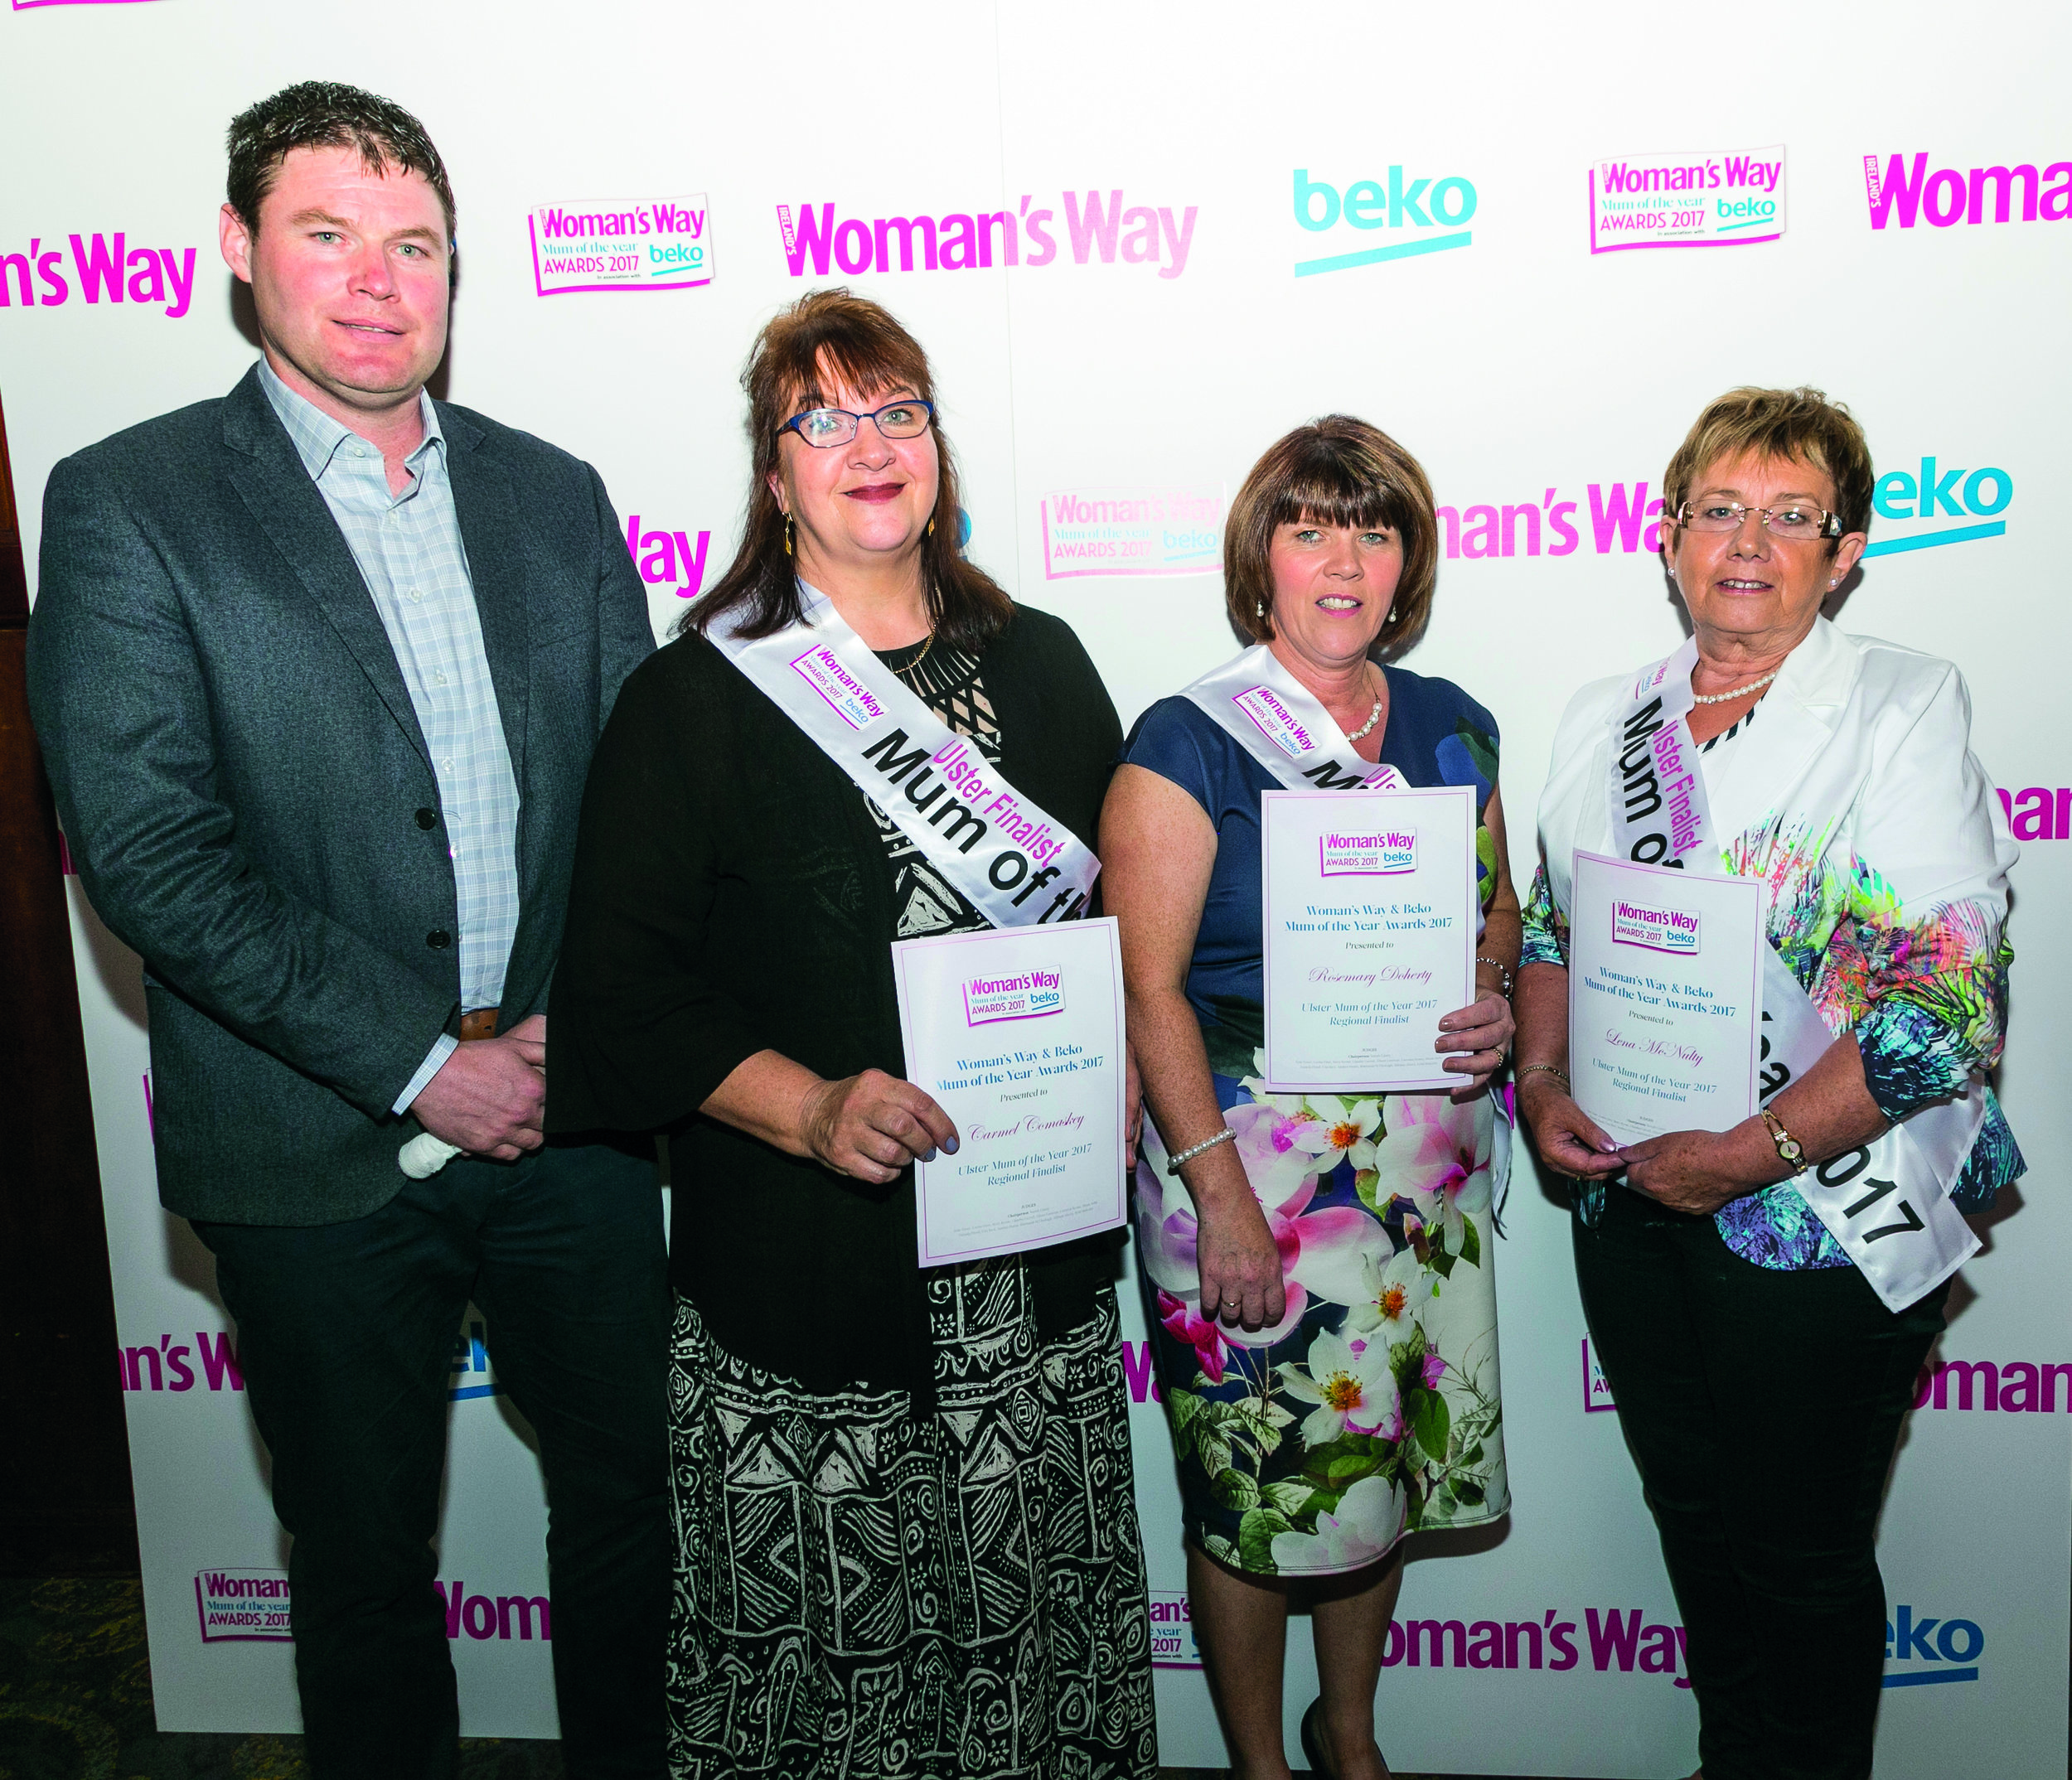 Shane pictured with Carmel Comaskey, Rosemary Doherty and Lena McNulty